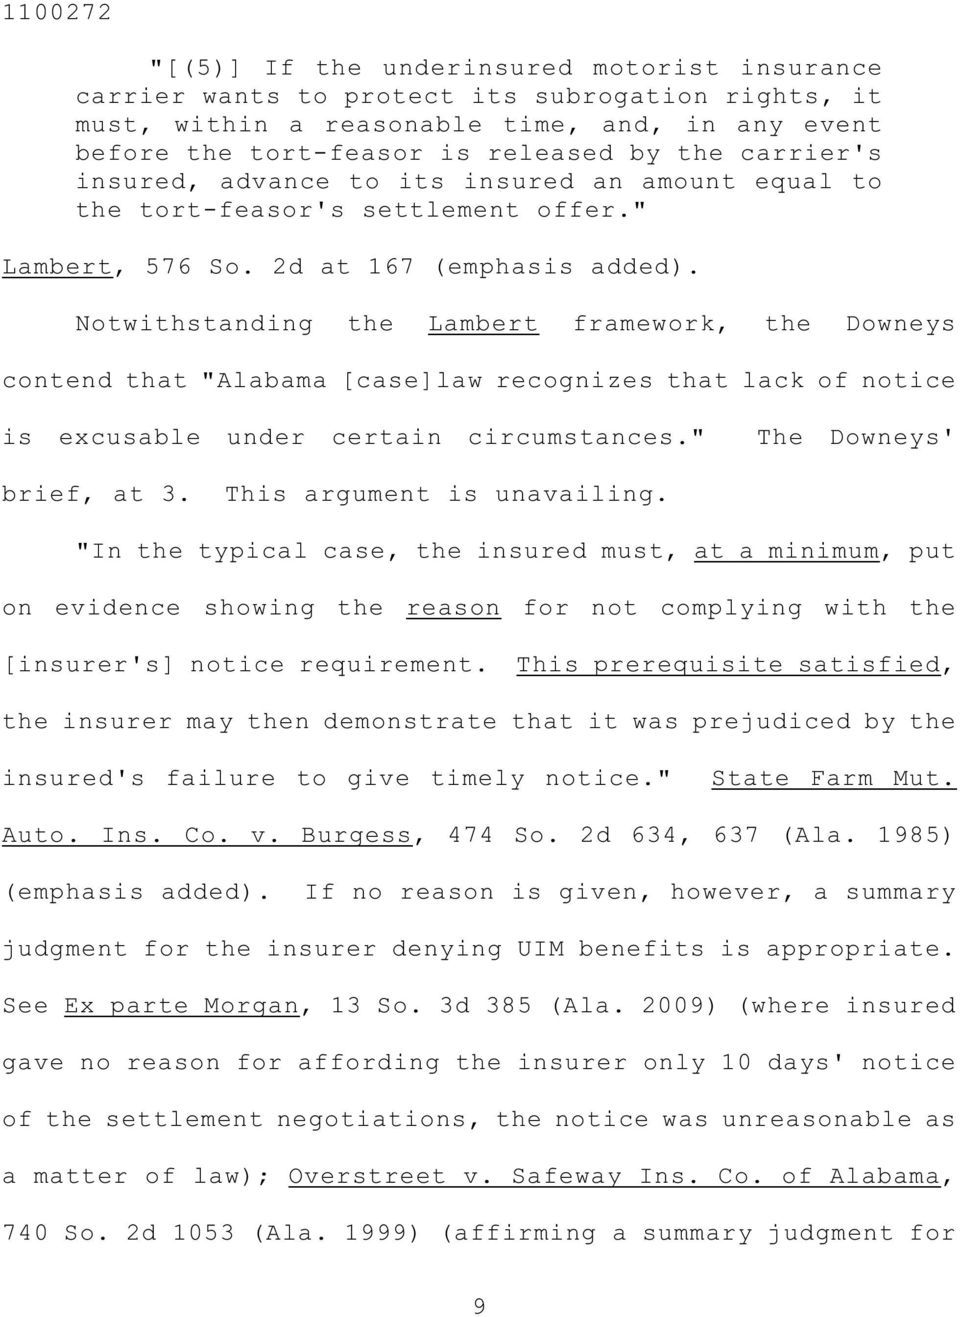 "Notwithstanding the Lambert framework, the Downeys contend that ""Alabama [case]law recognizes that lack of notice is excusable under certain circumstances."" The Downeys' brief, at 3."